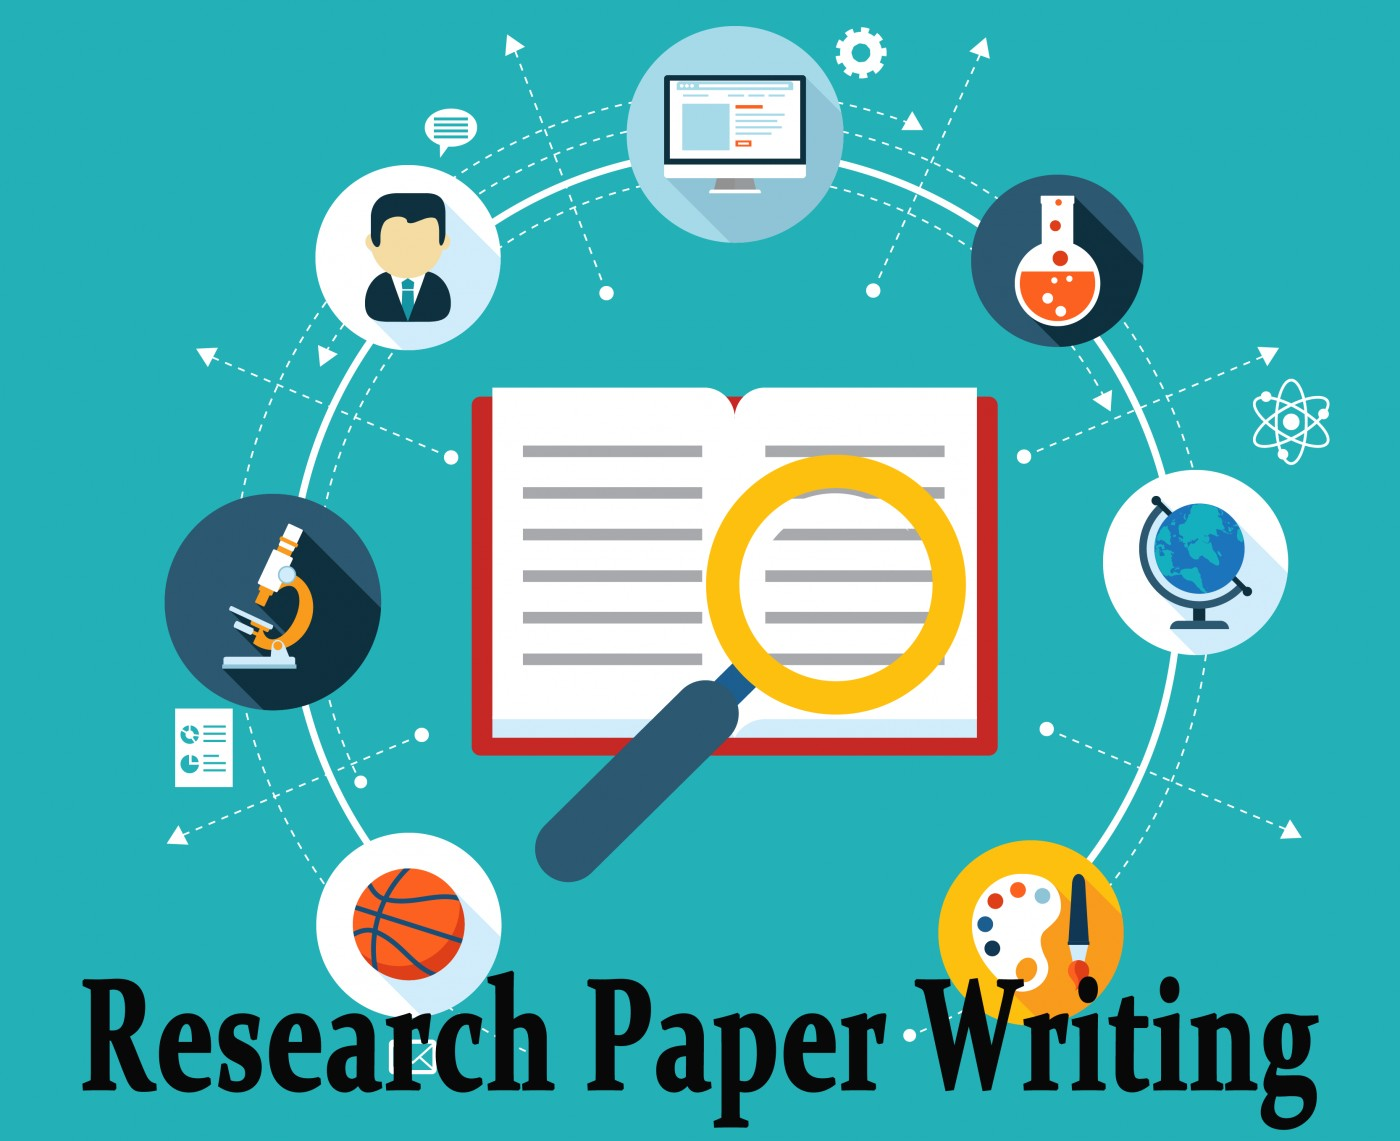 009 Writing The Research Paper 503 Effective Phenomenal Introduction Of A Ppt How To Write Outline 1400